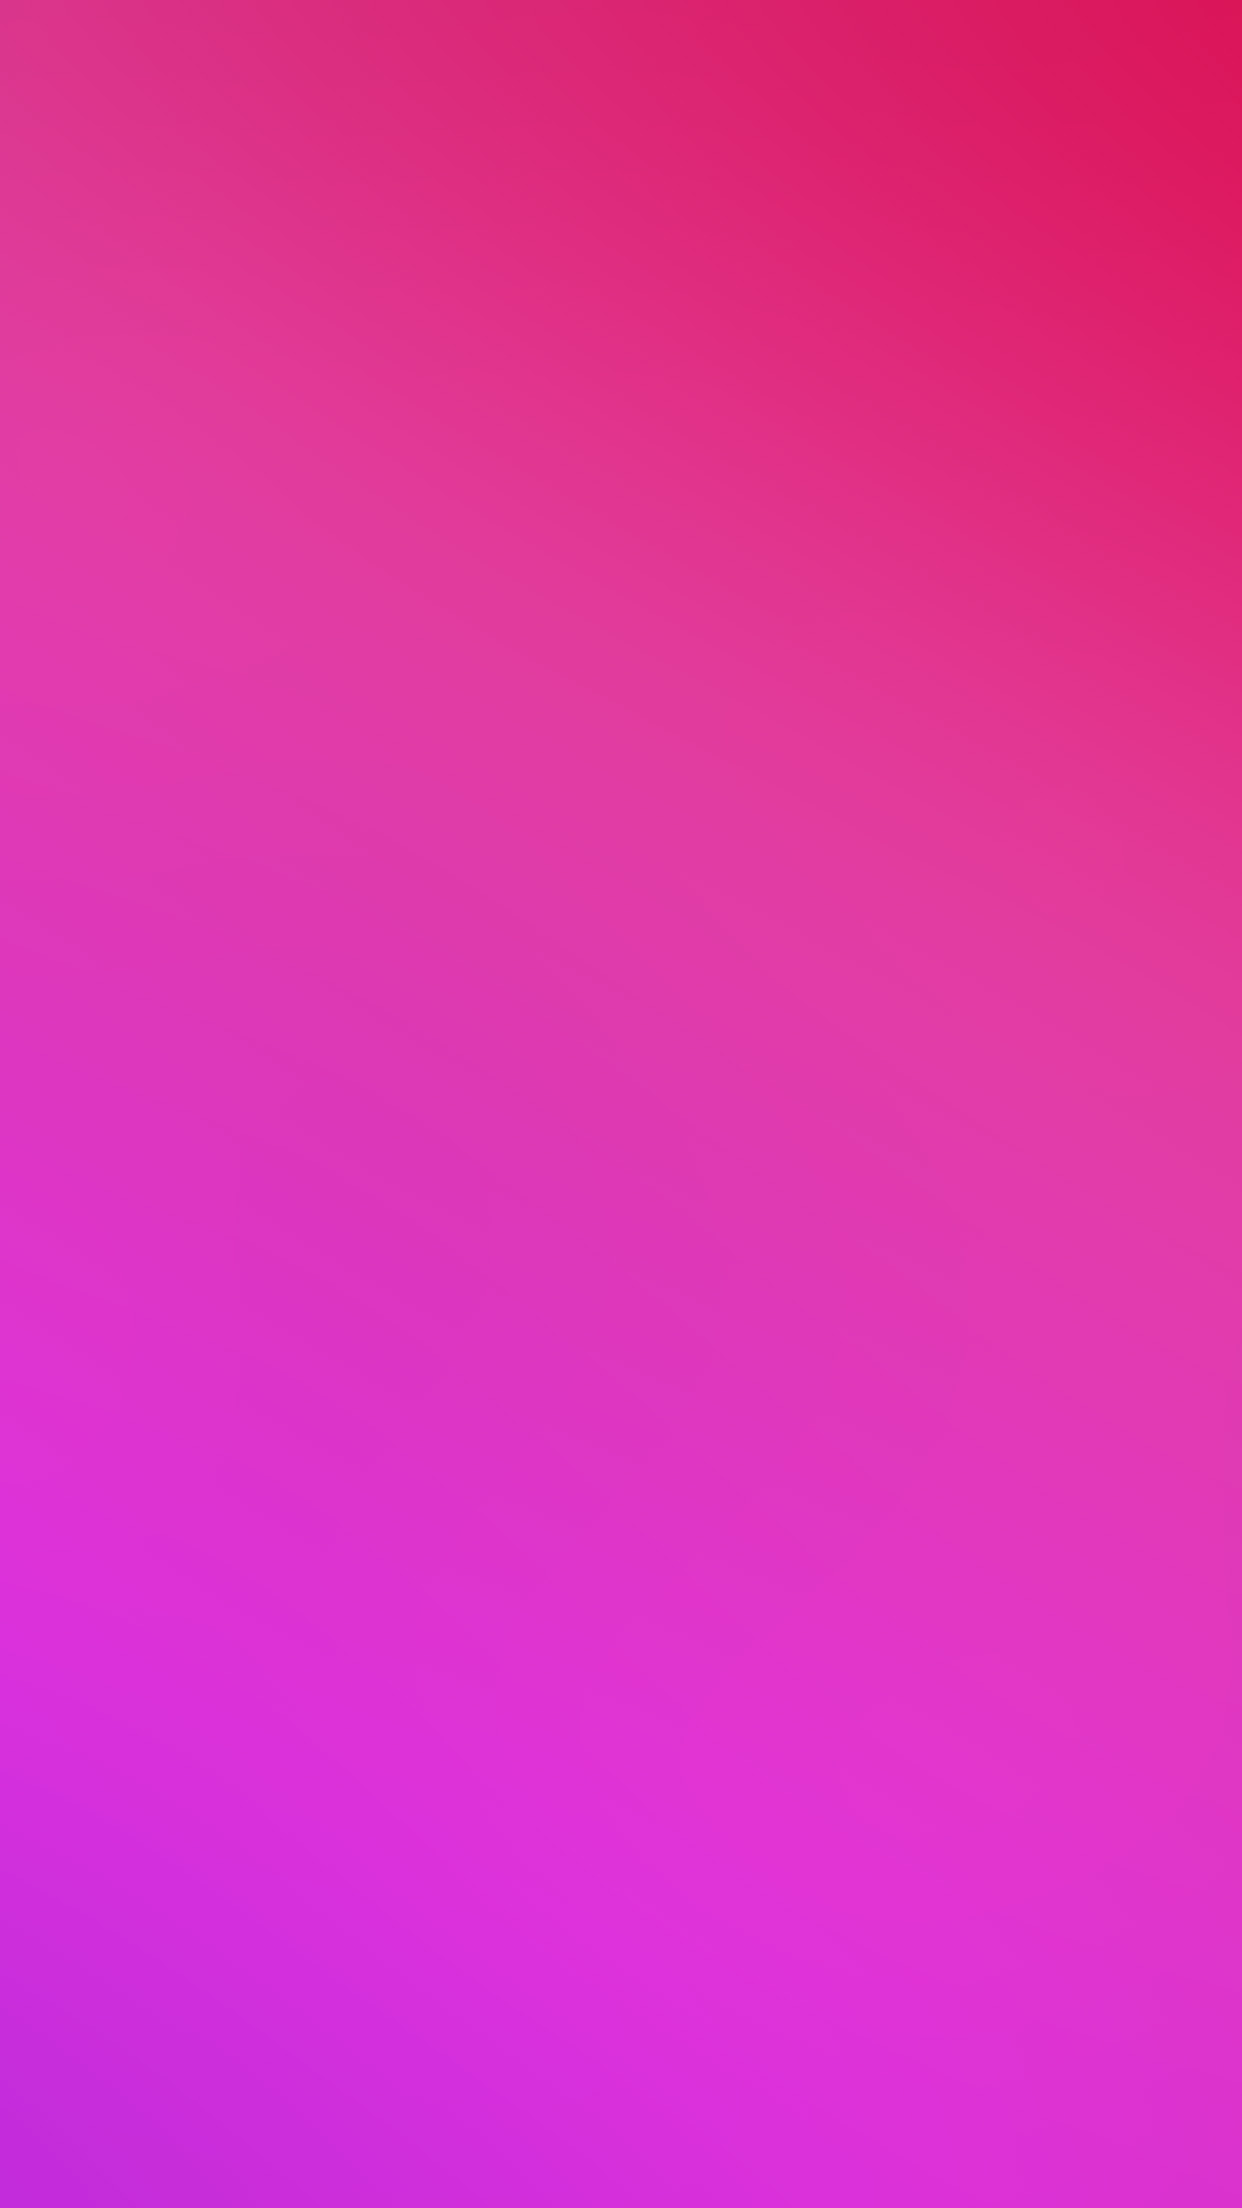 Pink Fall Wallpaper Hd For Iphone X Iphonexpapers